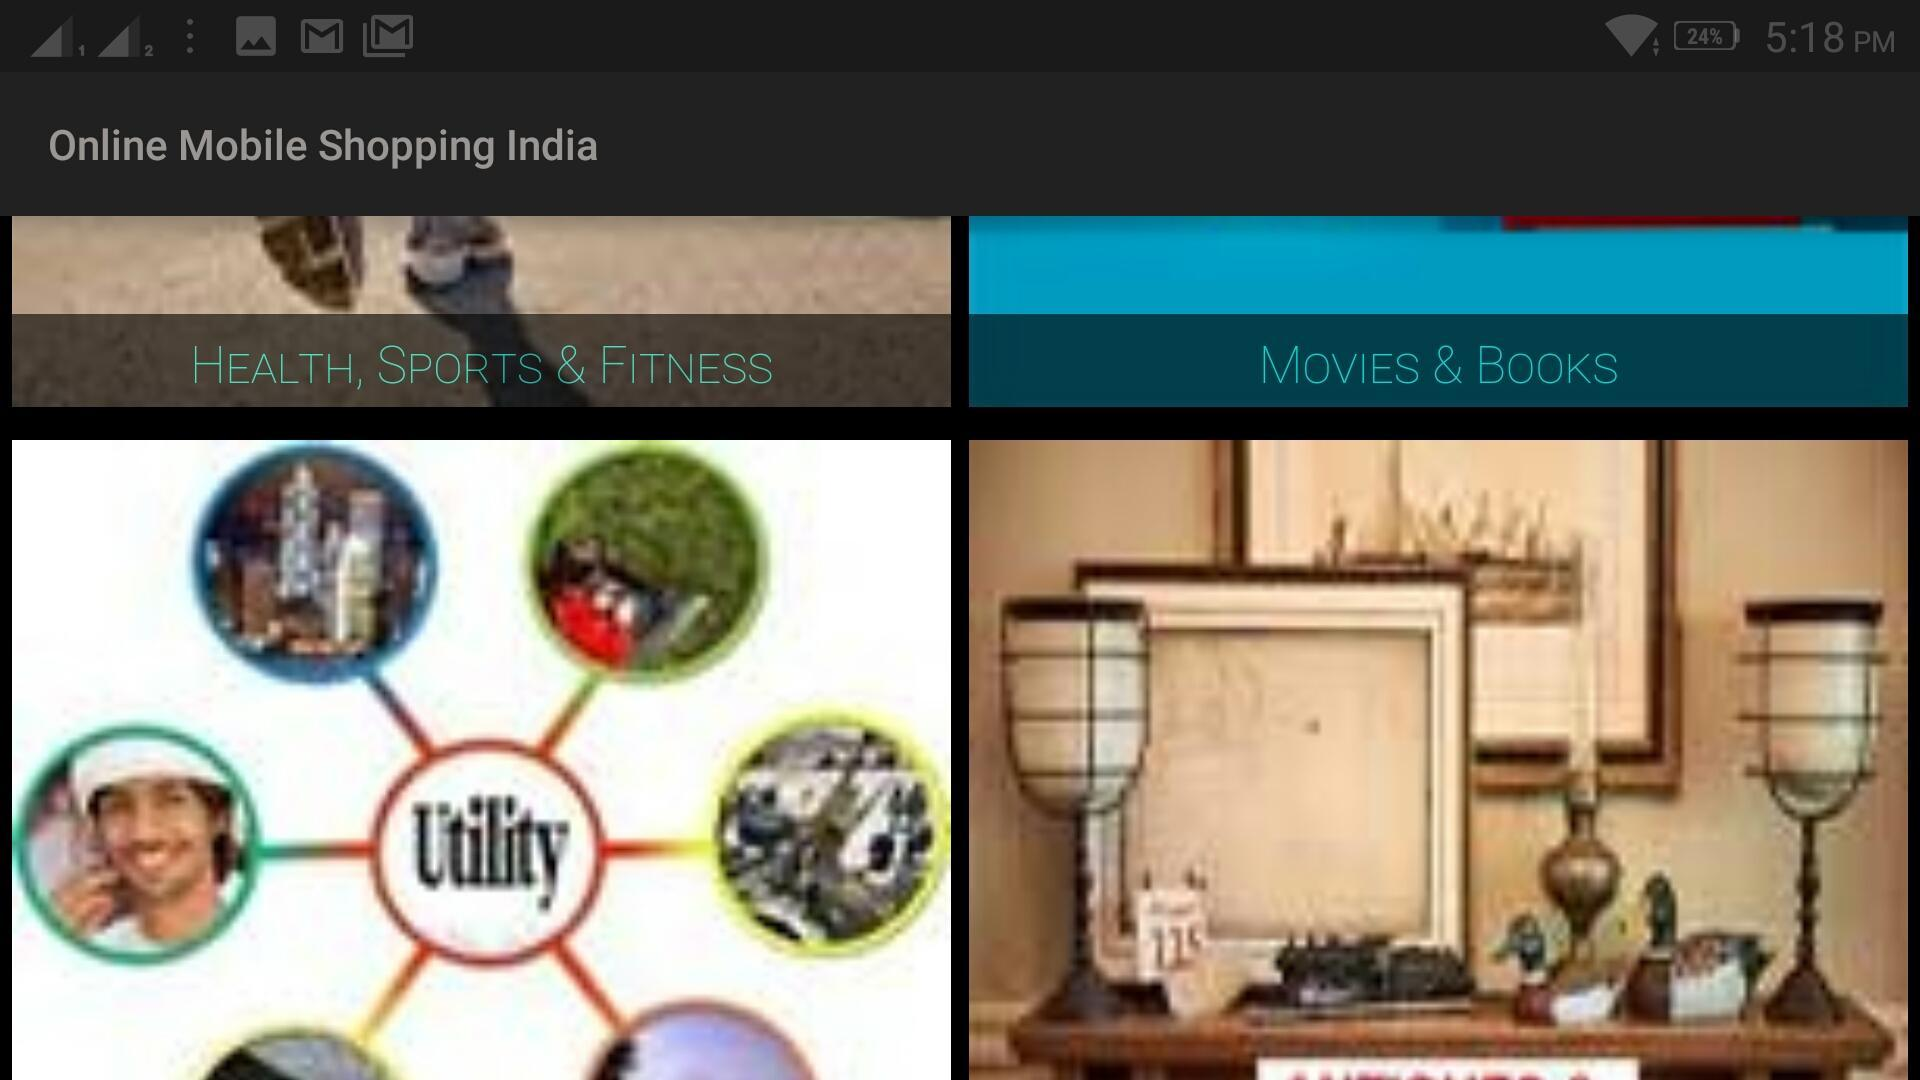 Online Mobile Shopping India For Android Apk Download